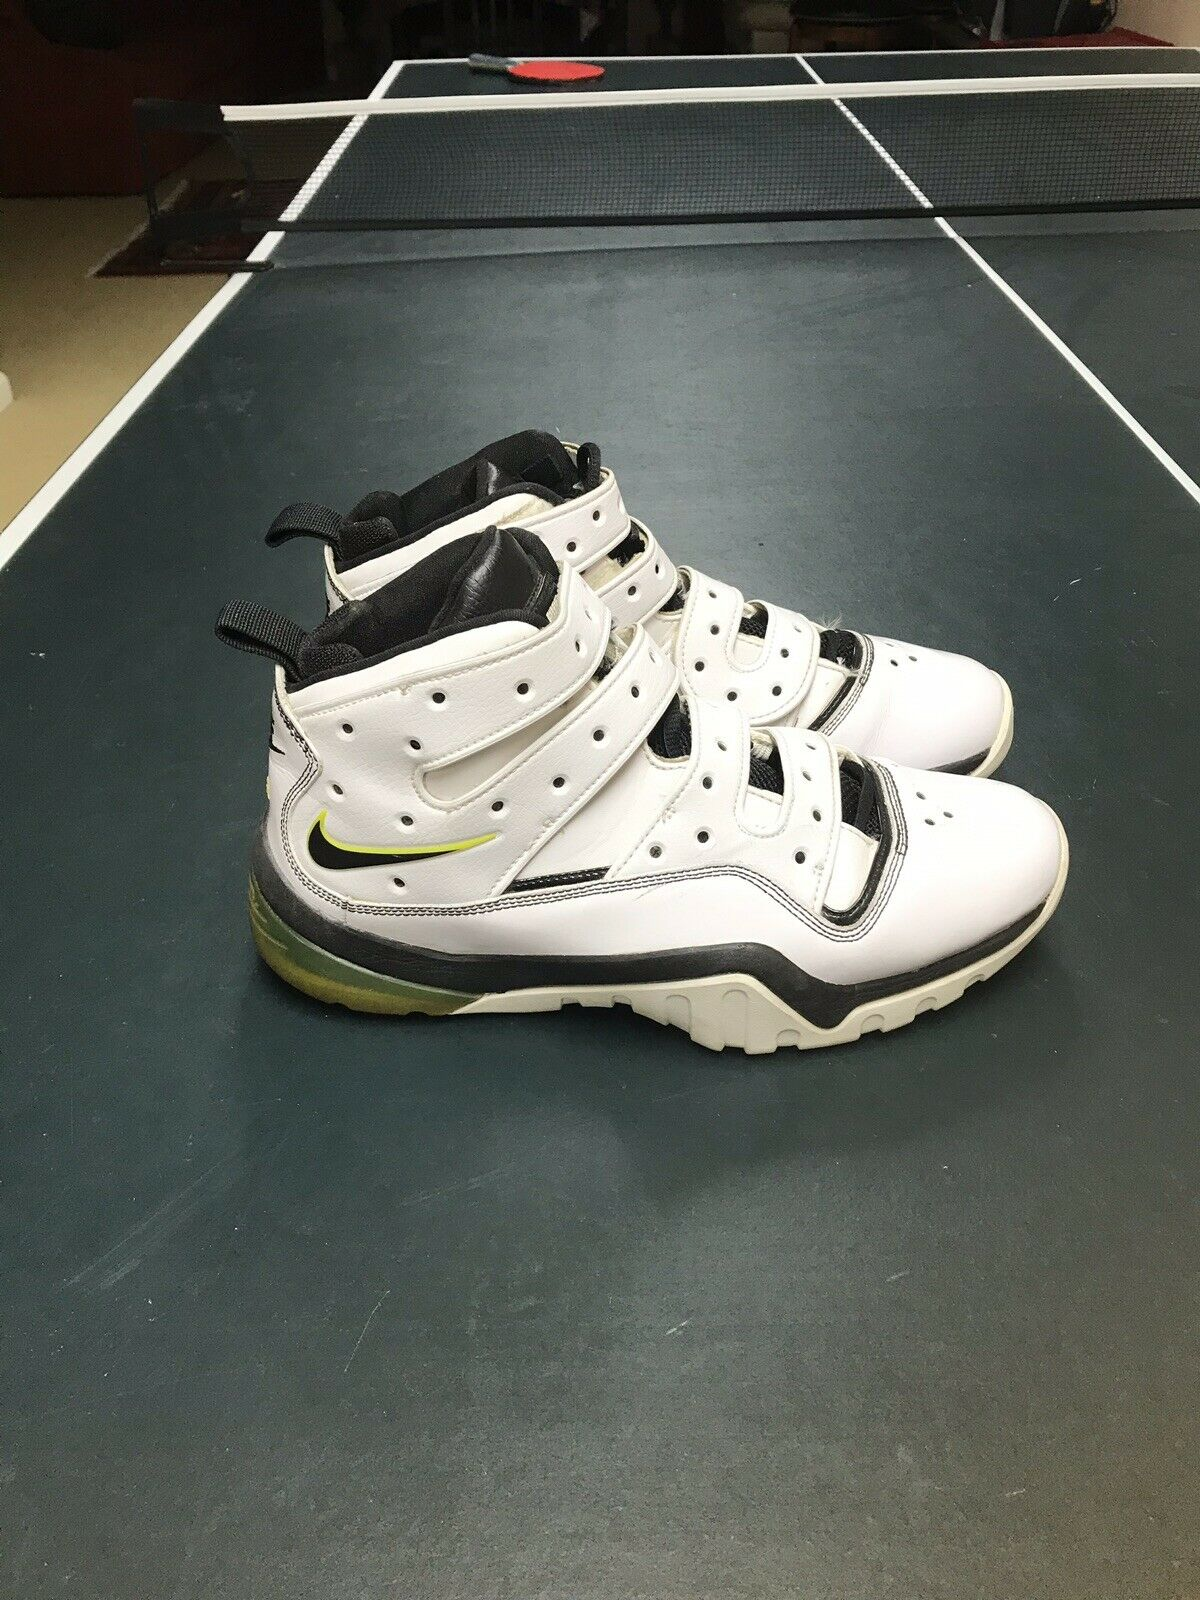 Nike Air Zoom Hyper Attack Volleyball Shoes